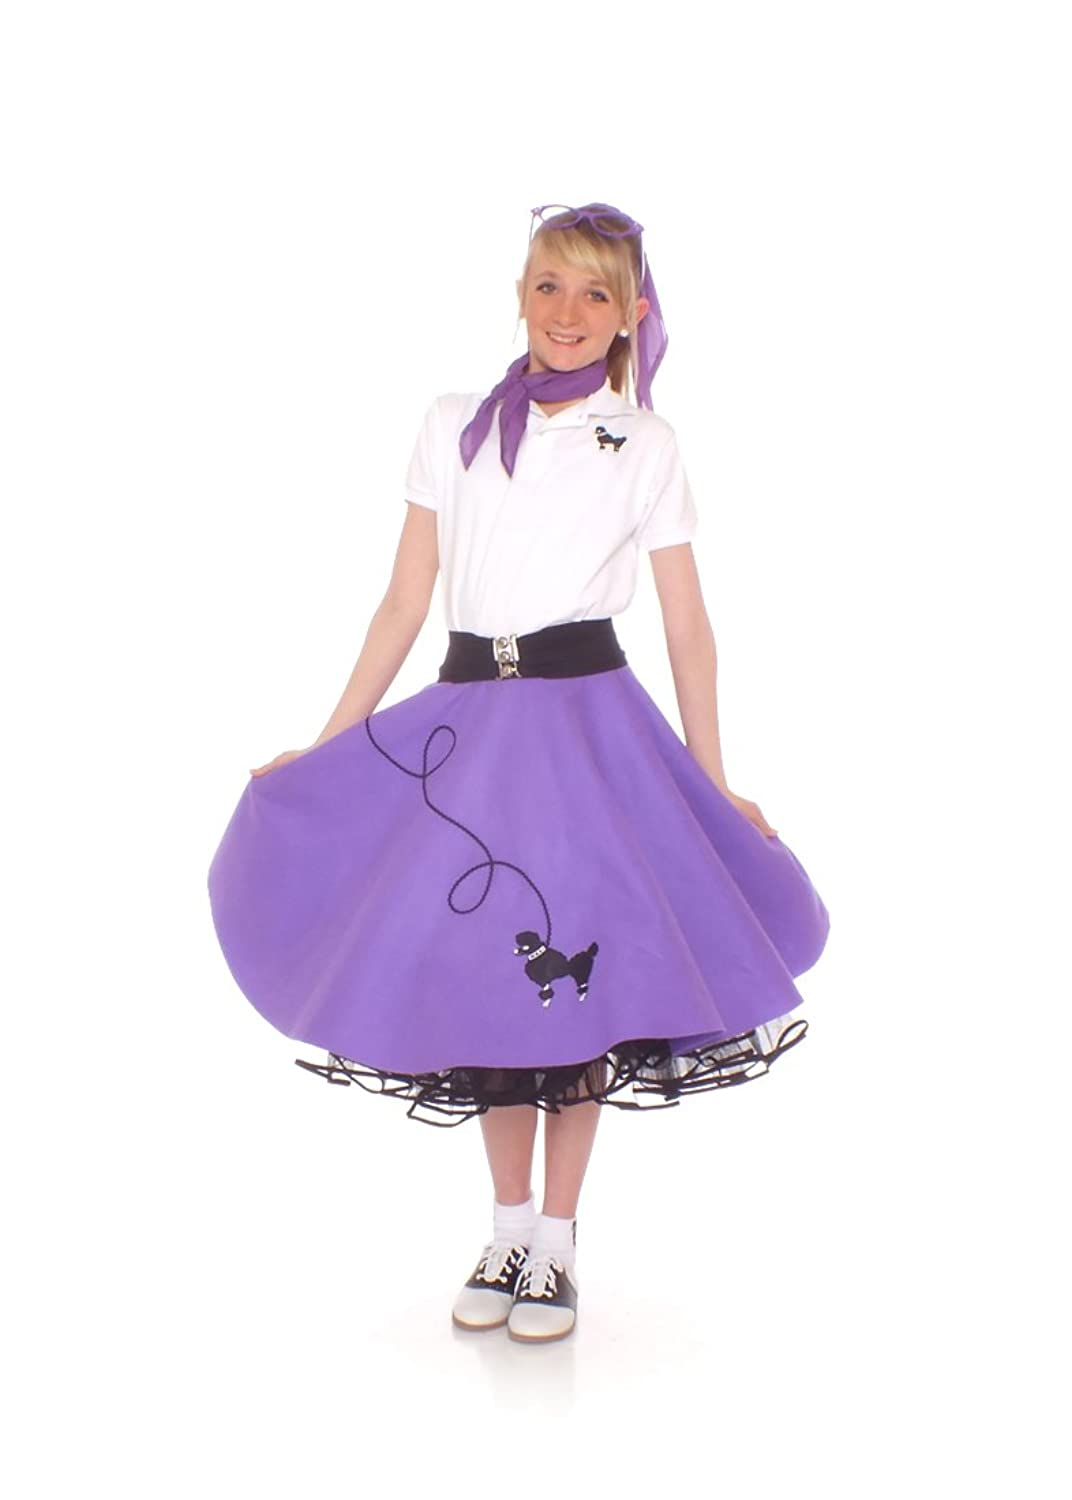 Kids 1950s Clothing & Costumes: Girls, Boys, Toddlers Poodle Skirt for Girls $36.86 AT vintagedancer.com